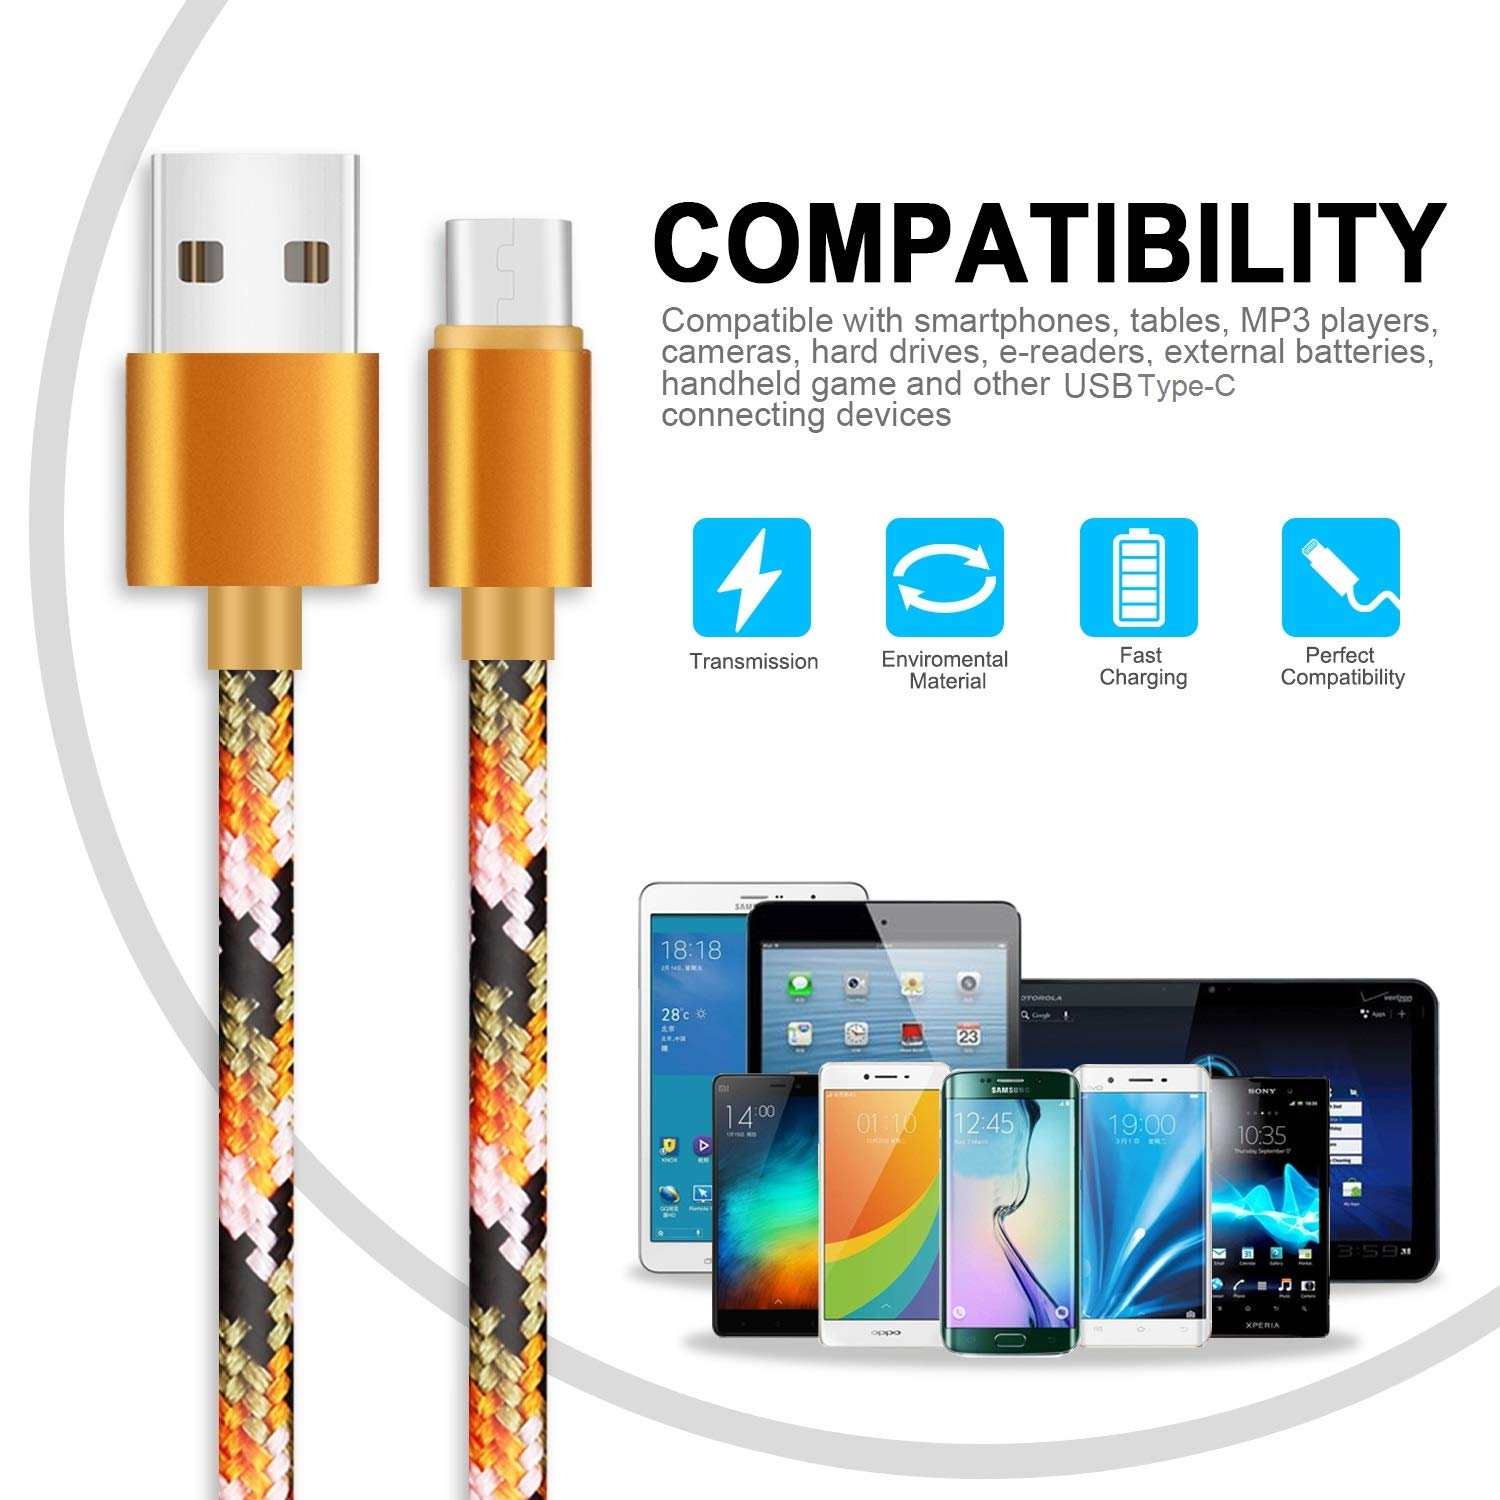 Note 9 S10 Plus Note 9 Plus S9 Note 8 Plus 4 Pack 1FT 3FT 6FT 10FT USB A TO USB C Charer Cable Long /& Short Nylon Braided Charge /& Data USB Type C Charging C S9 Plus S10 USB Type C Cable Fast Charging for Samsung Galaxy S8 S8 Plus Note 8